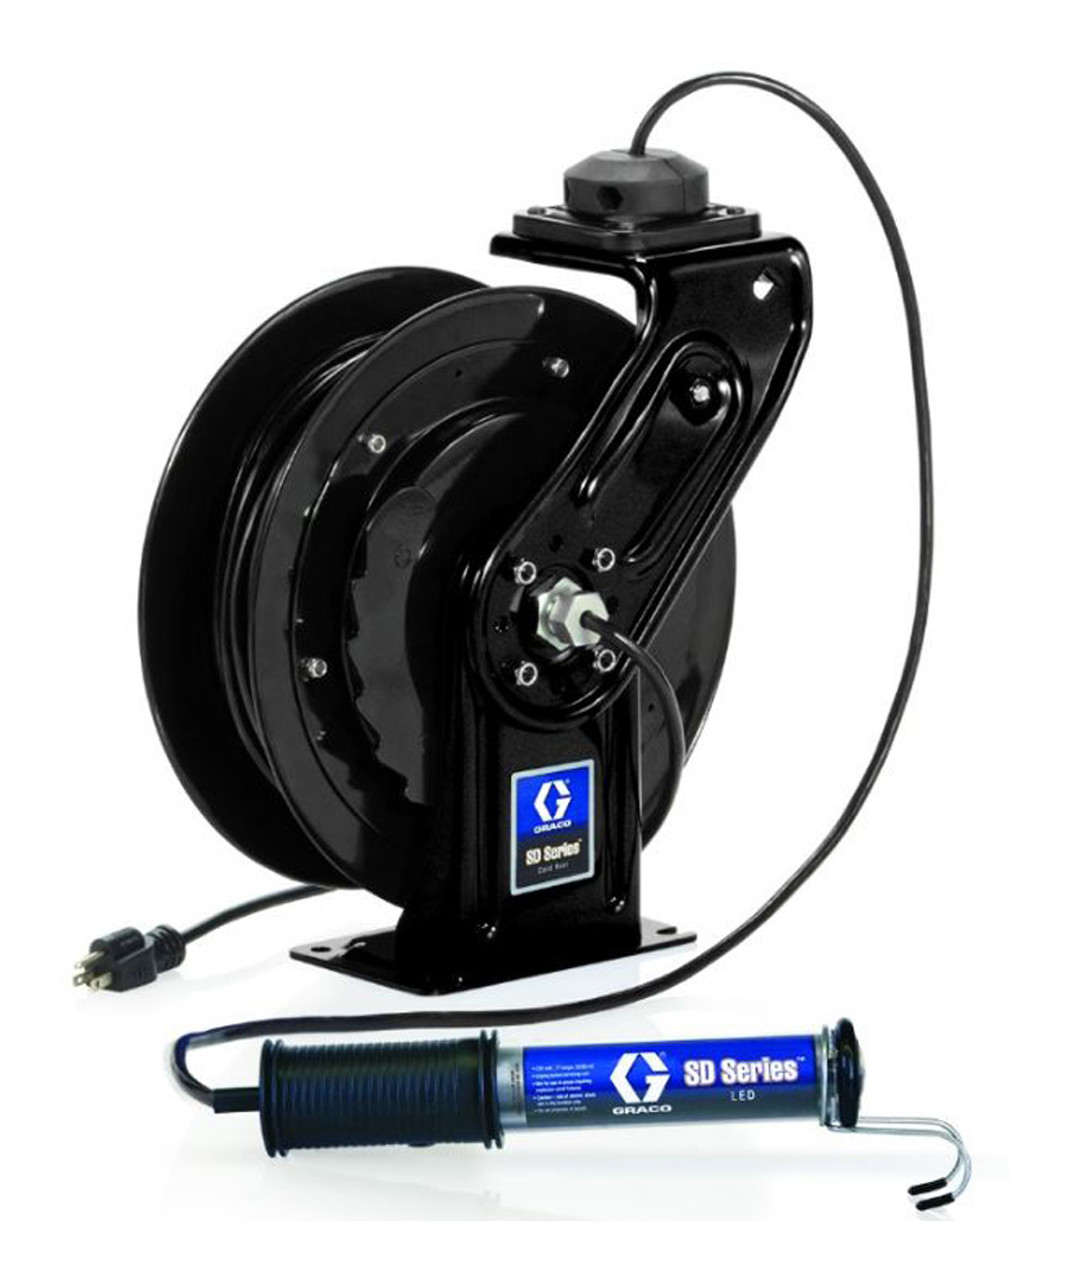 Led Light Cord Reel Retractable Extension W Tritap And Circuit Breaker Prolite Graco Series Awg John Ellsworth Co Inc 900x1078